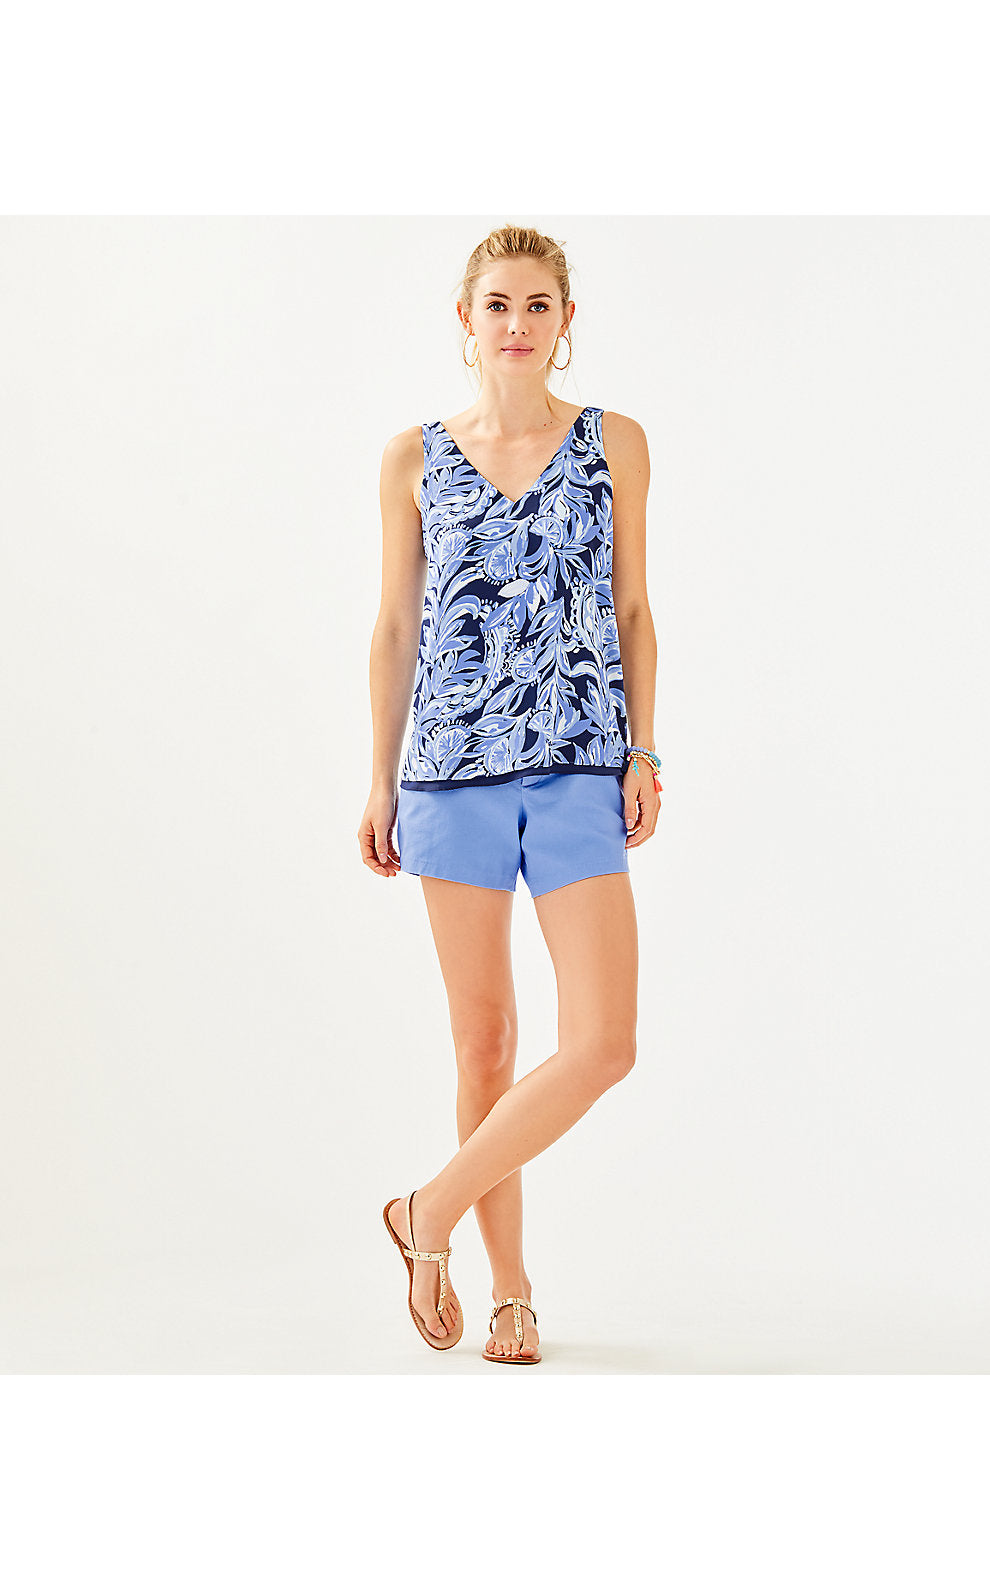 FLORIN SLEEVELESS V-NECK HIGH TIDE NAVY      YOURE THE ZEST